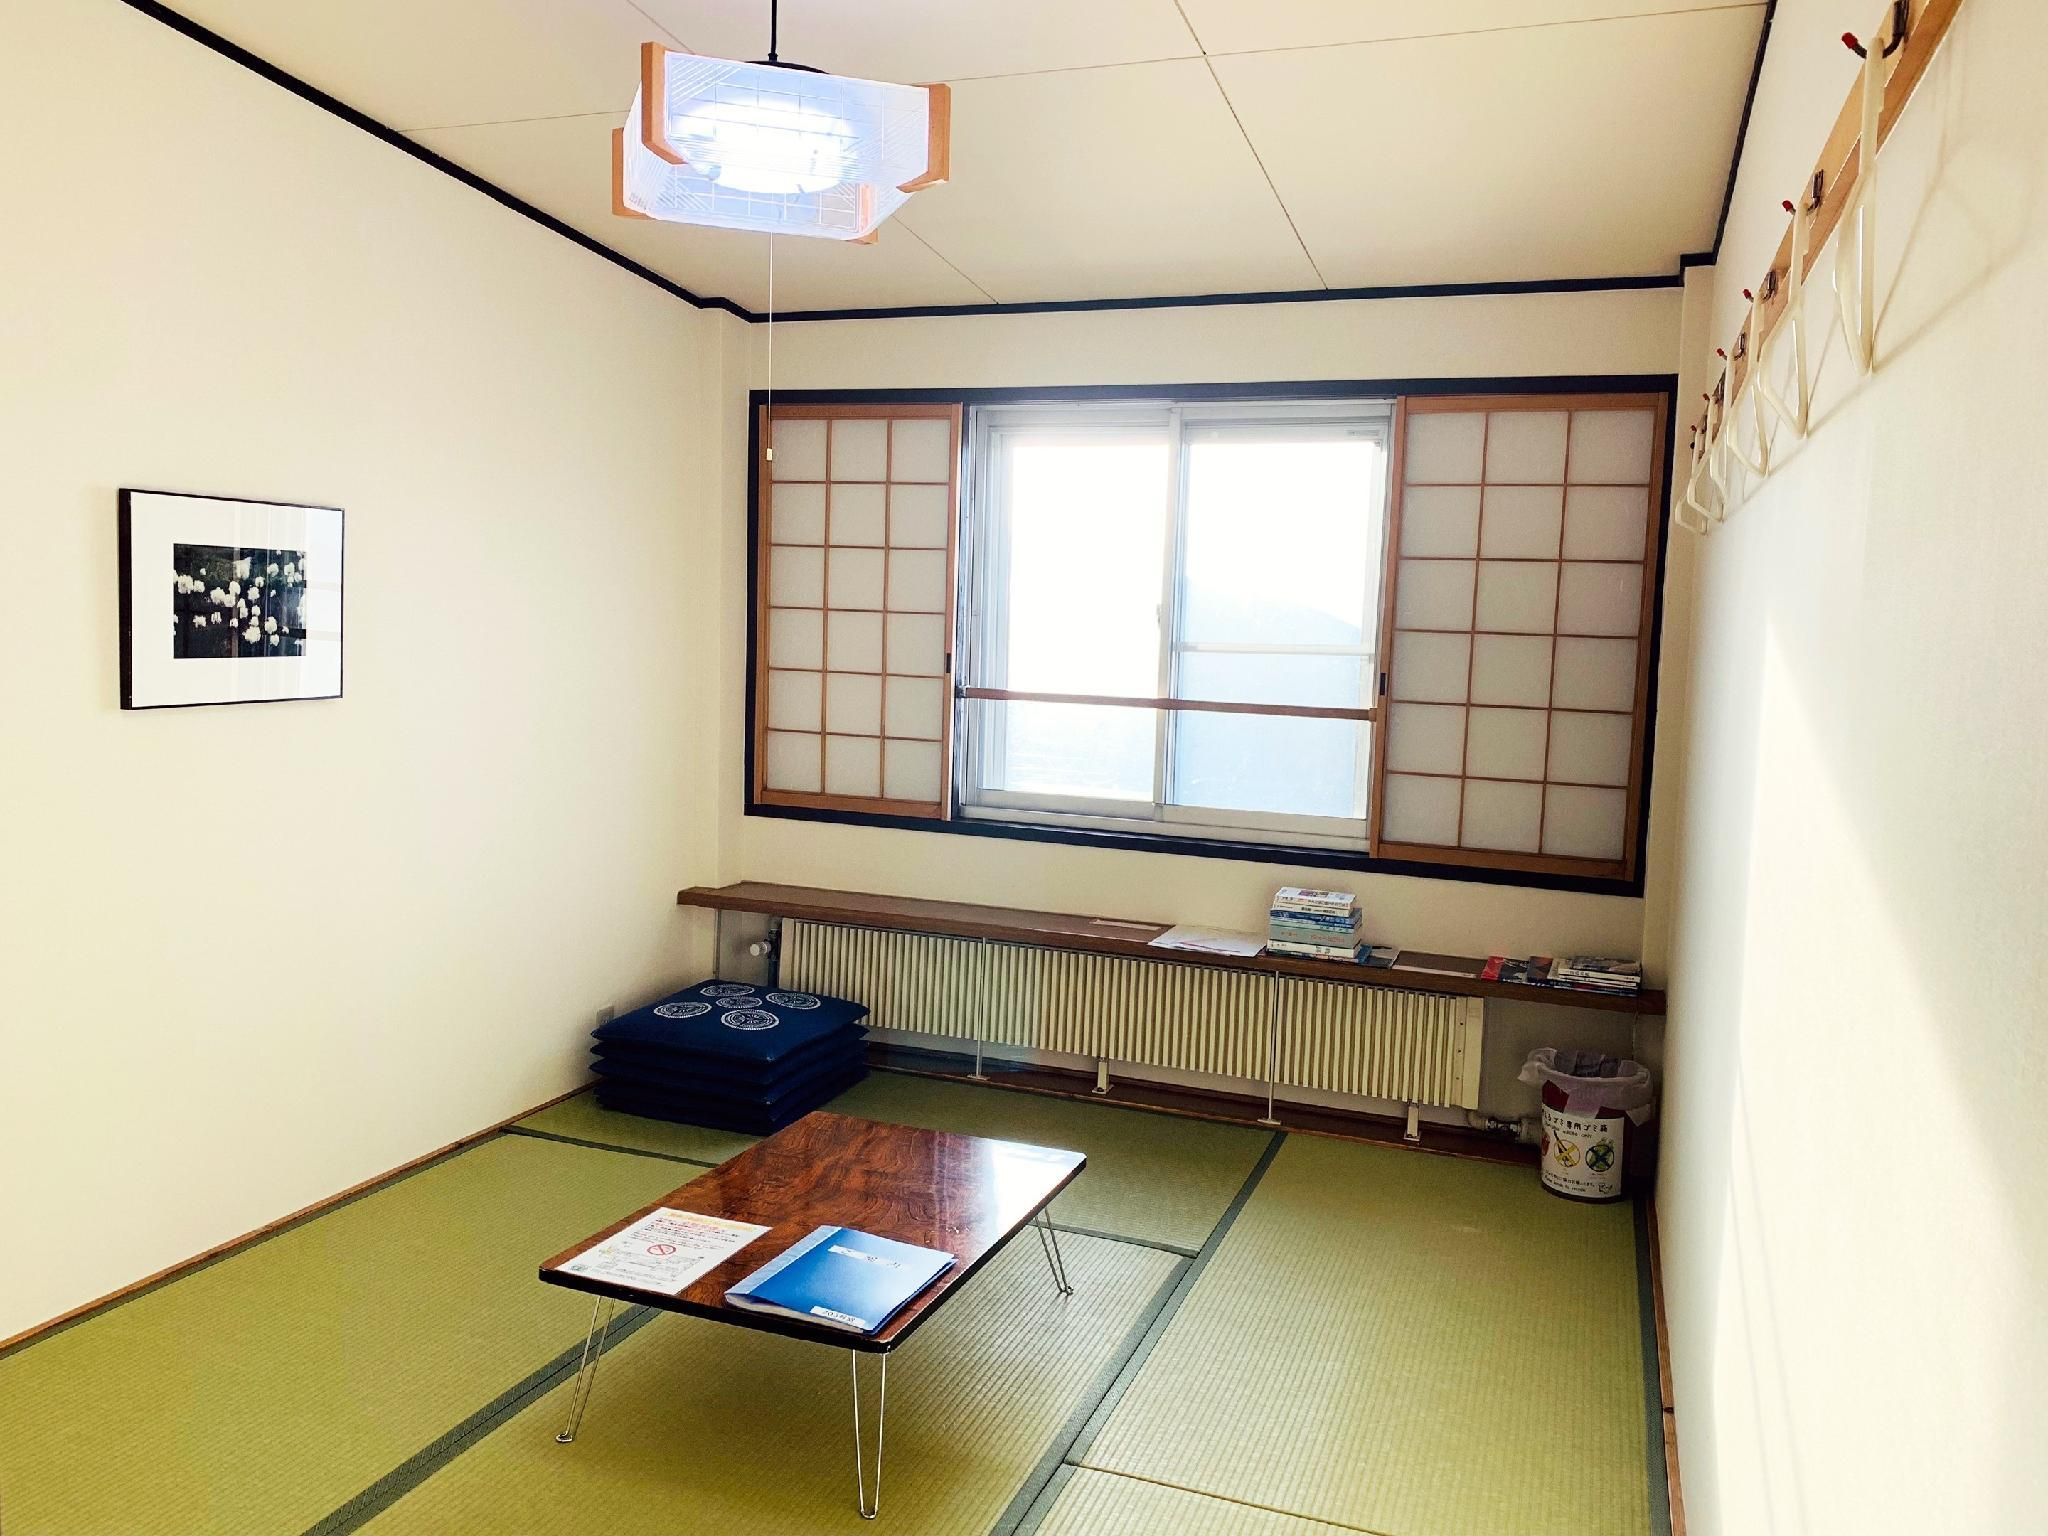 山景日式客房 (Mountain View Japanese Style Room)